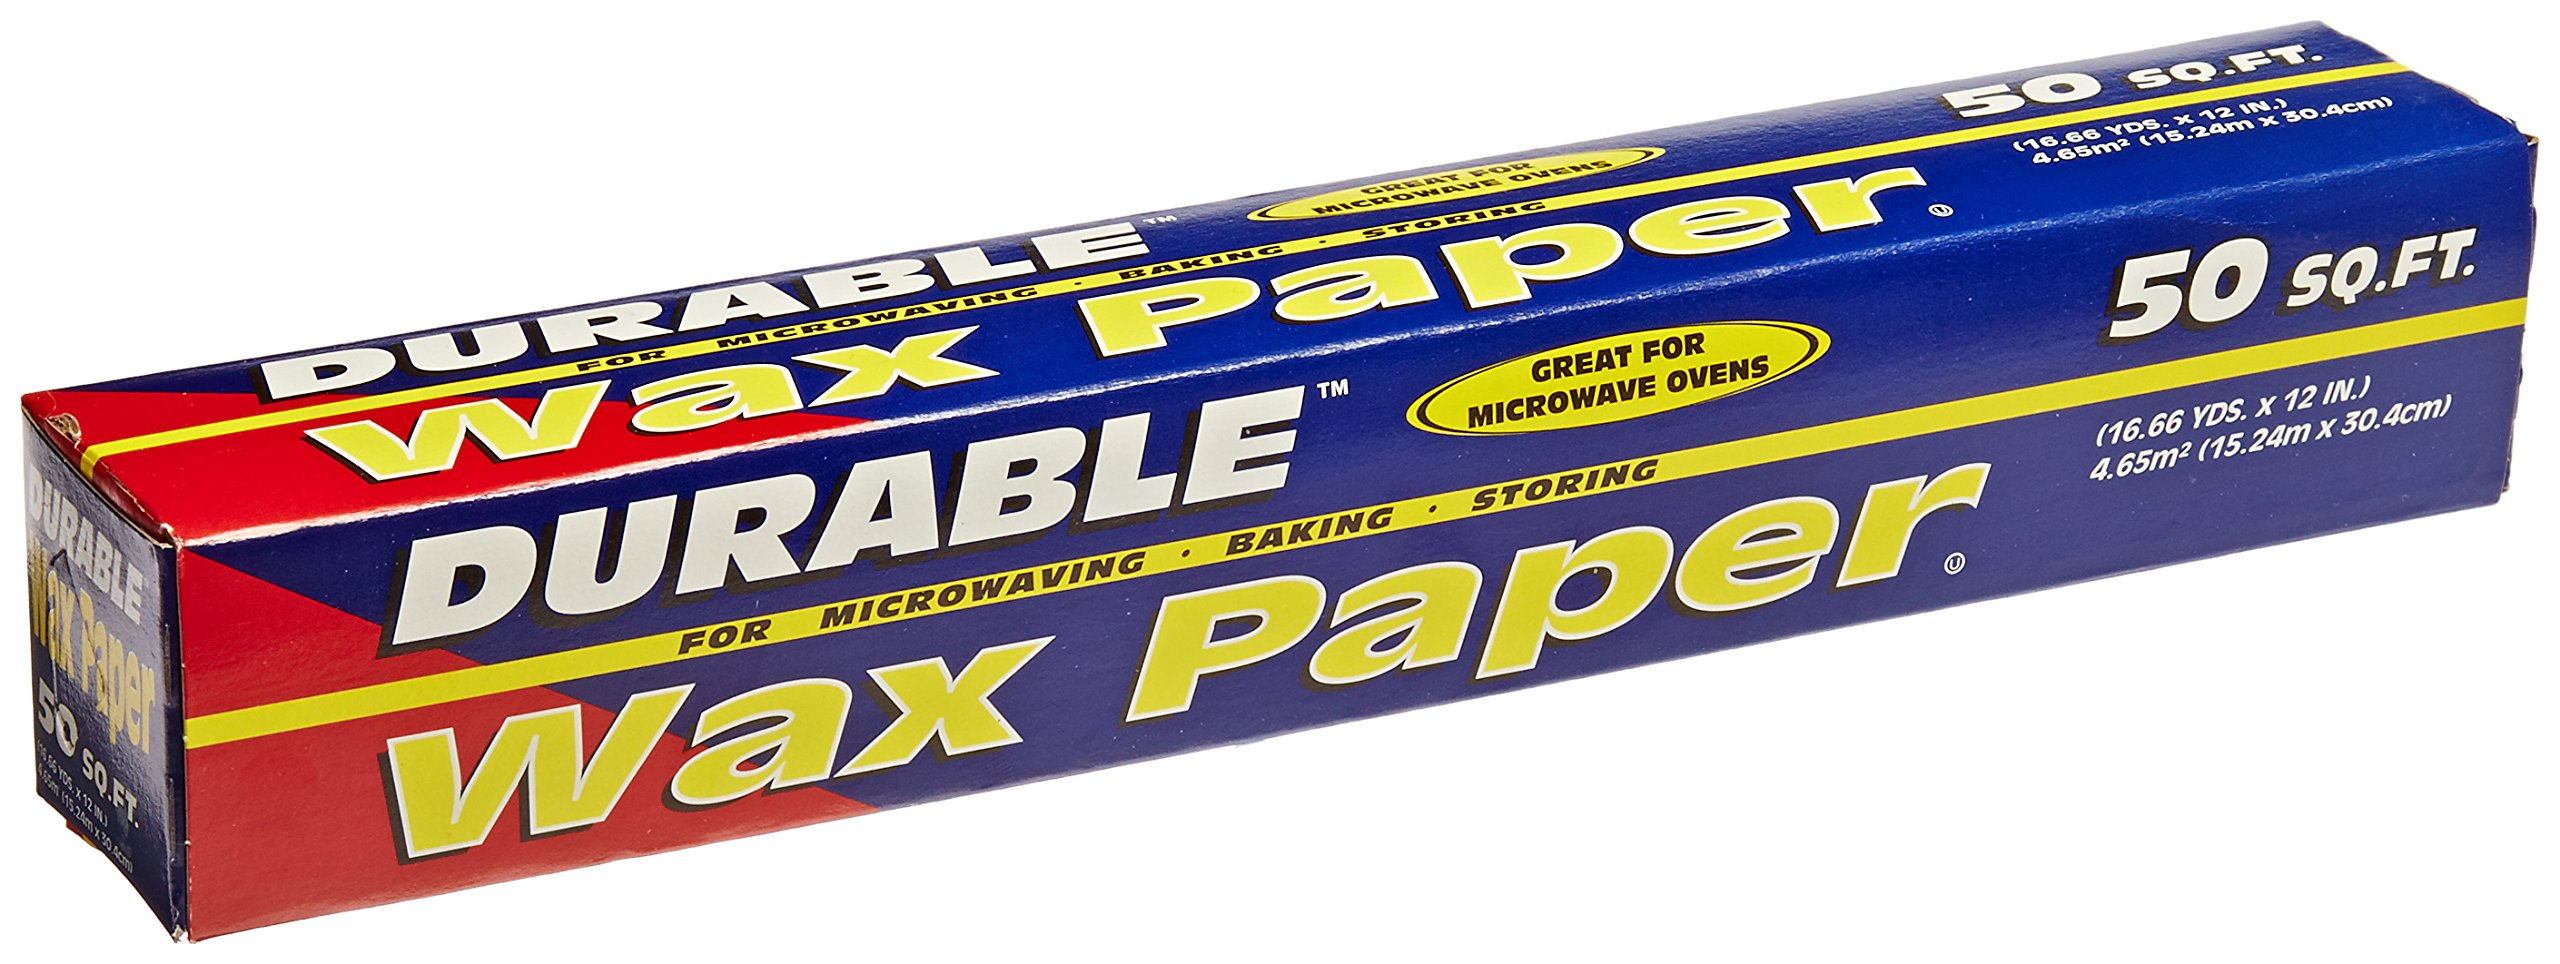 Durable Packaging Wax Paper Roll, 12'' x 50' (Pack of 24) by Durable Packaging (Image #1)